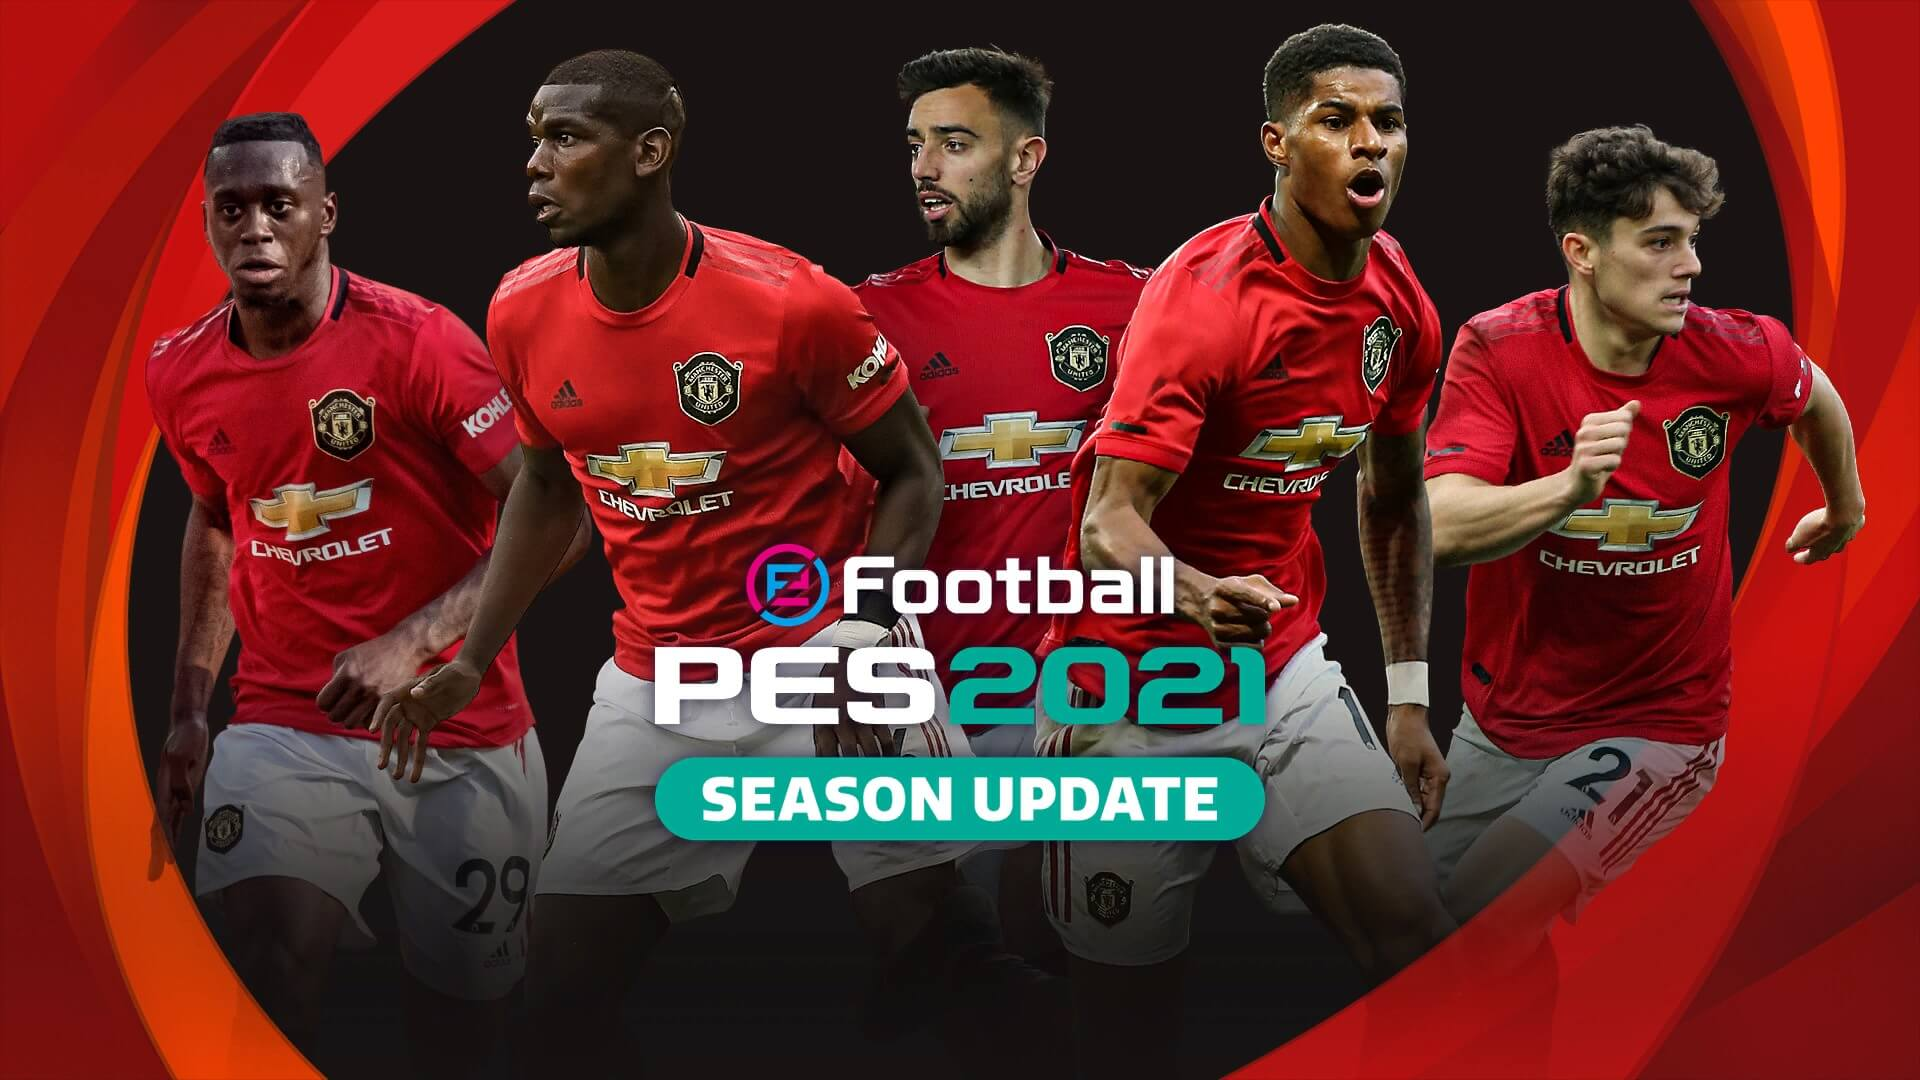 Manchester United 2021 Team Wallpapers Wallpaper Cave